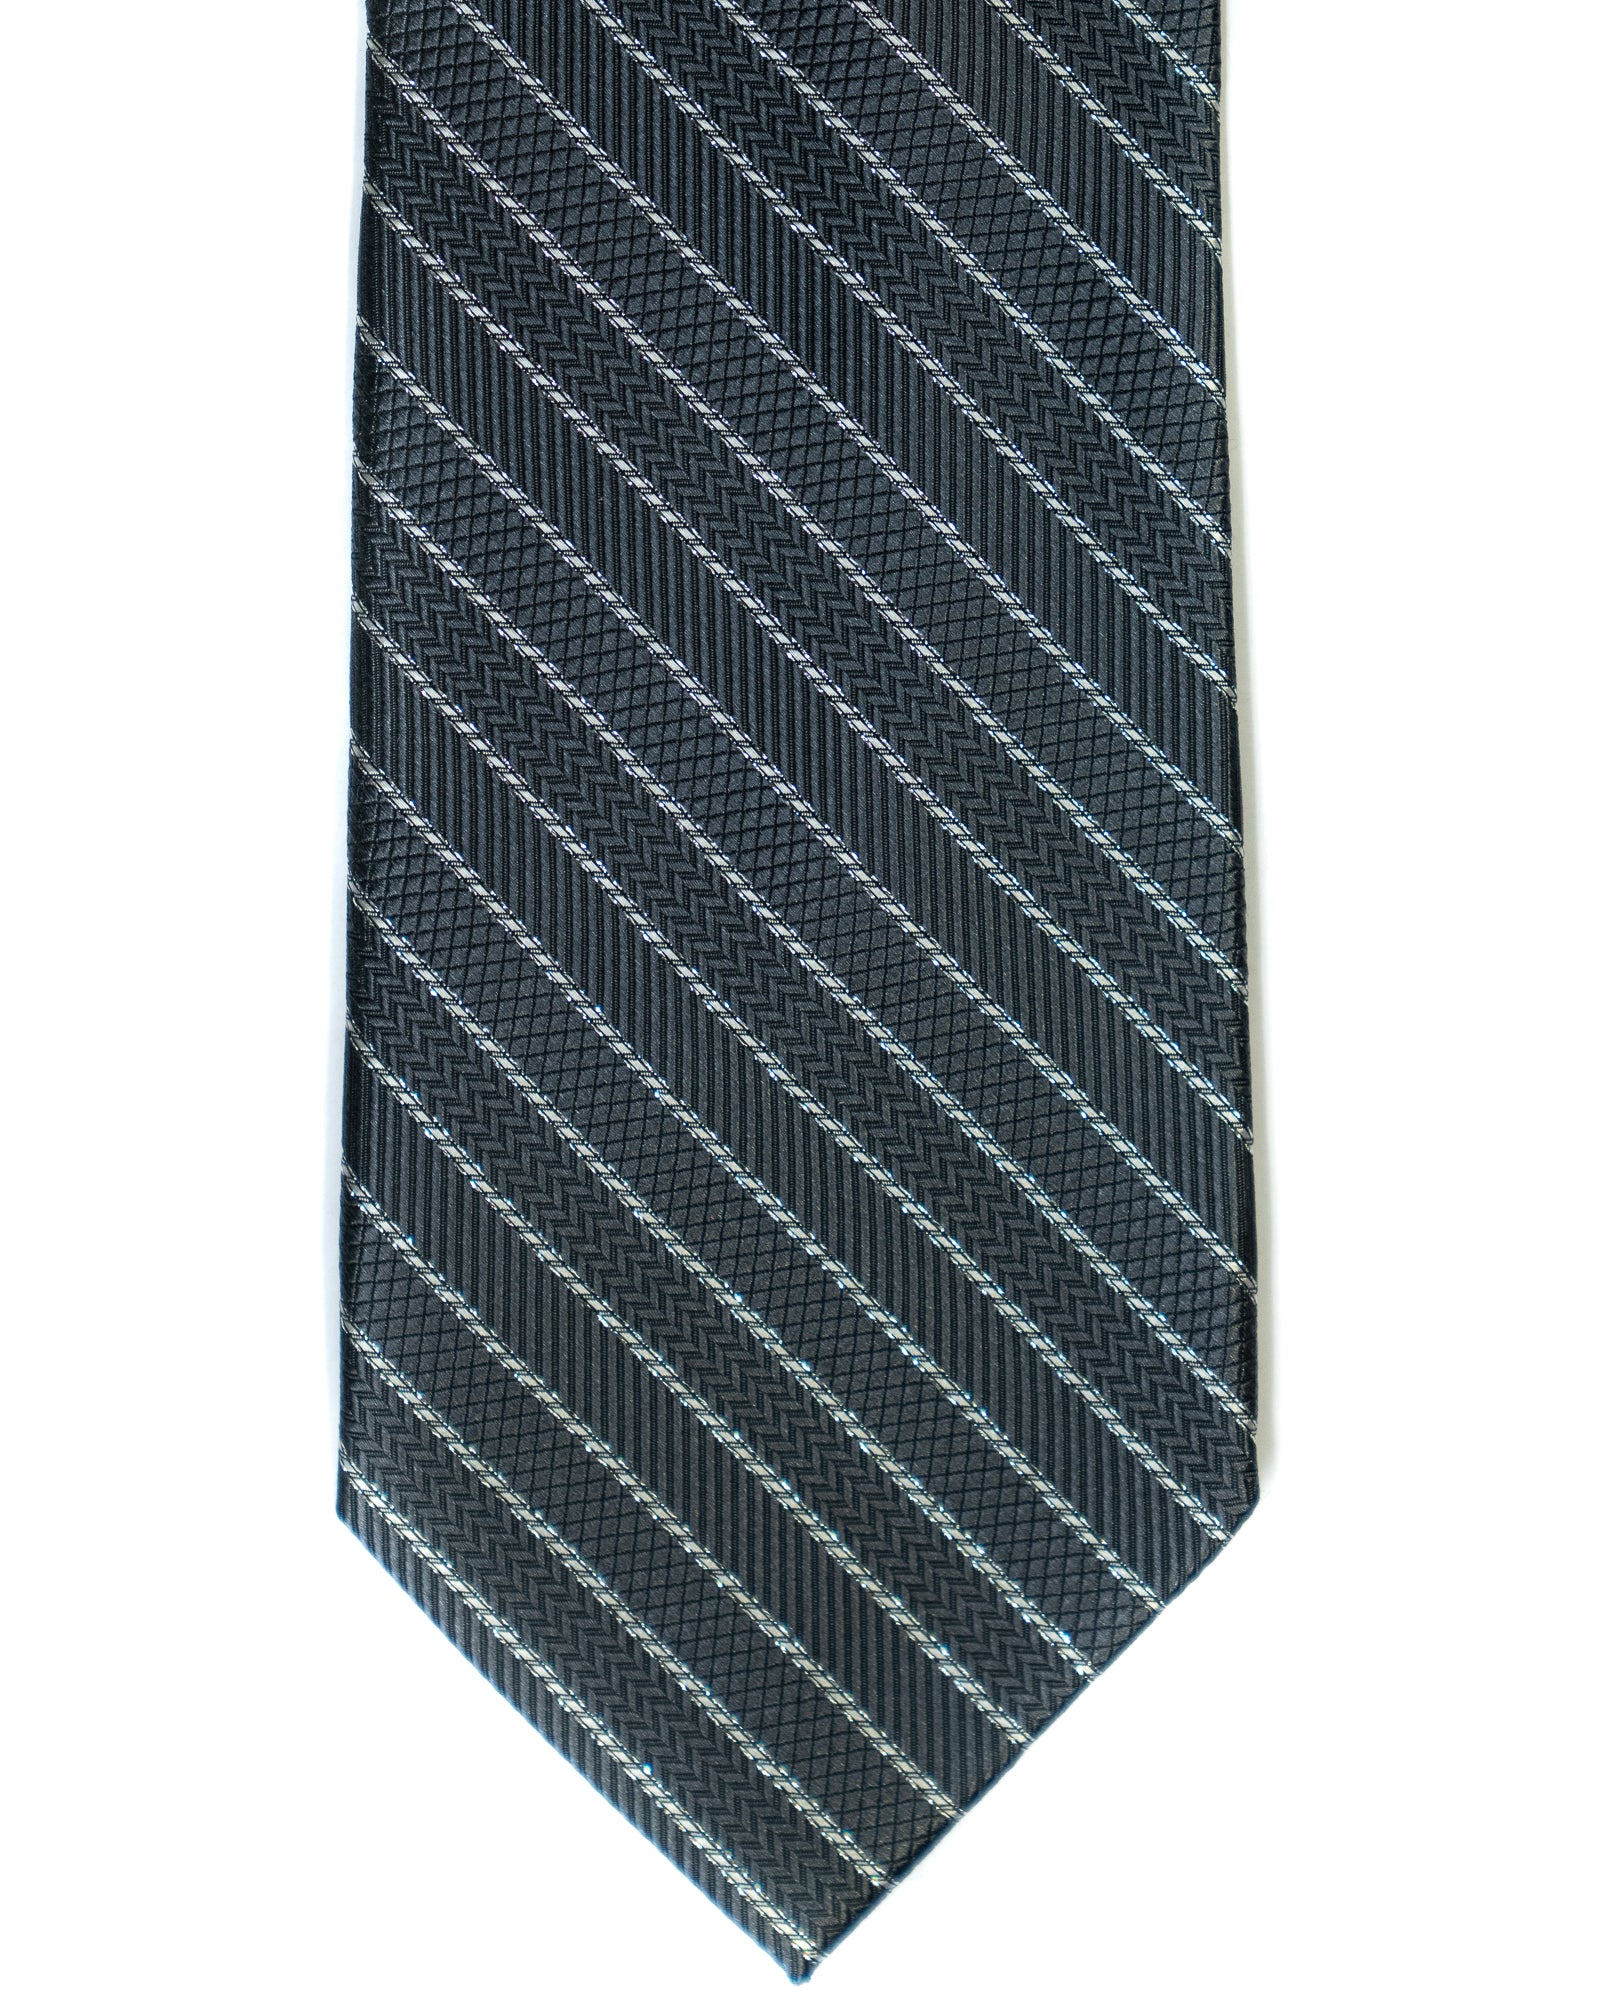 Silk Tie In Grey With Silver Stripes - Rainwater's Men's Clothing and Tuxedo Rental